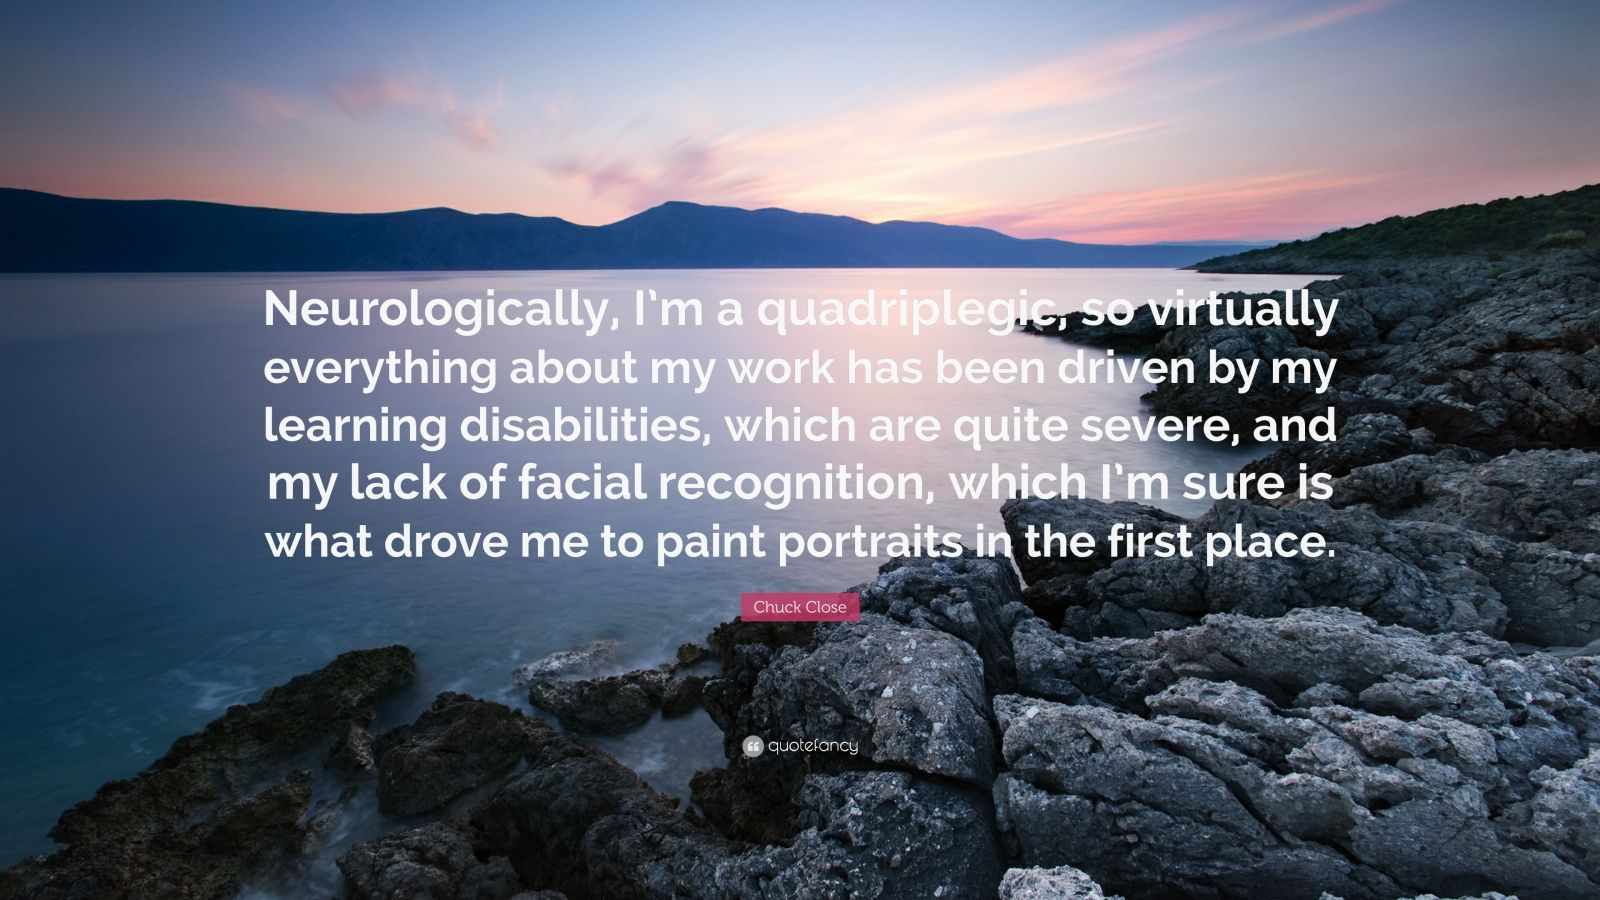 """Chuck Close Quote: """"Neurologically, I'm a quadriplegic, so virtually everything about my work has been driven by my learning disabilities, which are quite severe, and my lack of facial recognition, which I'm sure is what drove me to paint portraits in the first place."""""""